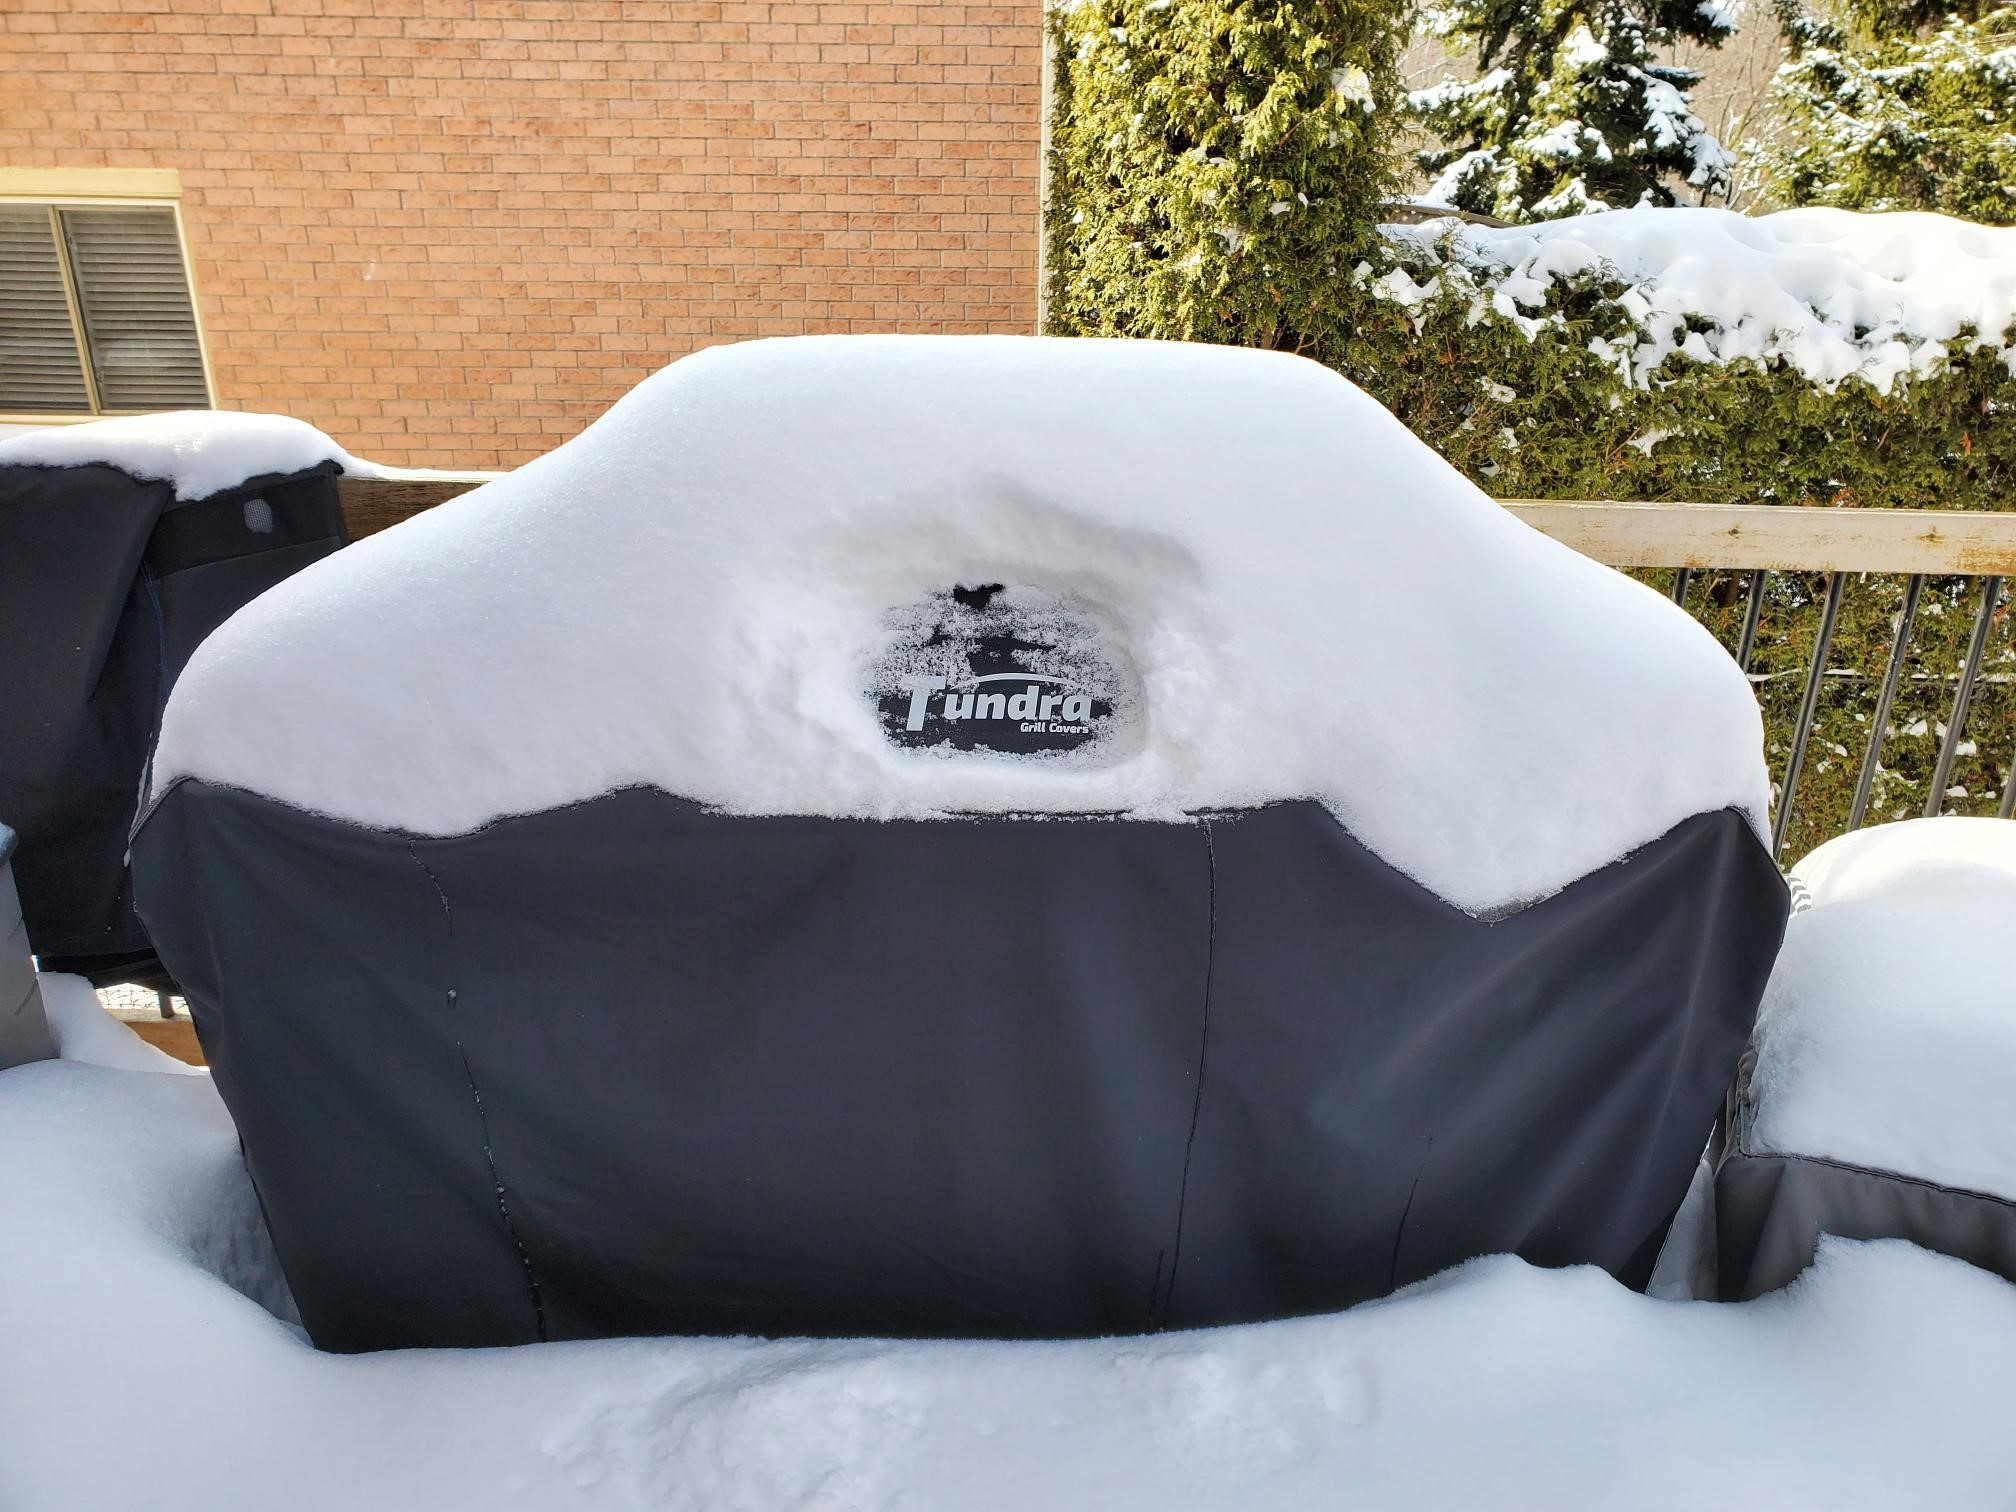 The Best Grill Cover for All-Year Use In Canada | Tundra Grill Covers by Outdoor Covers Canada